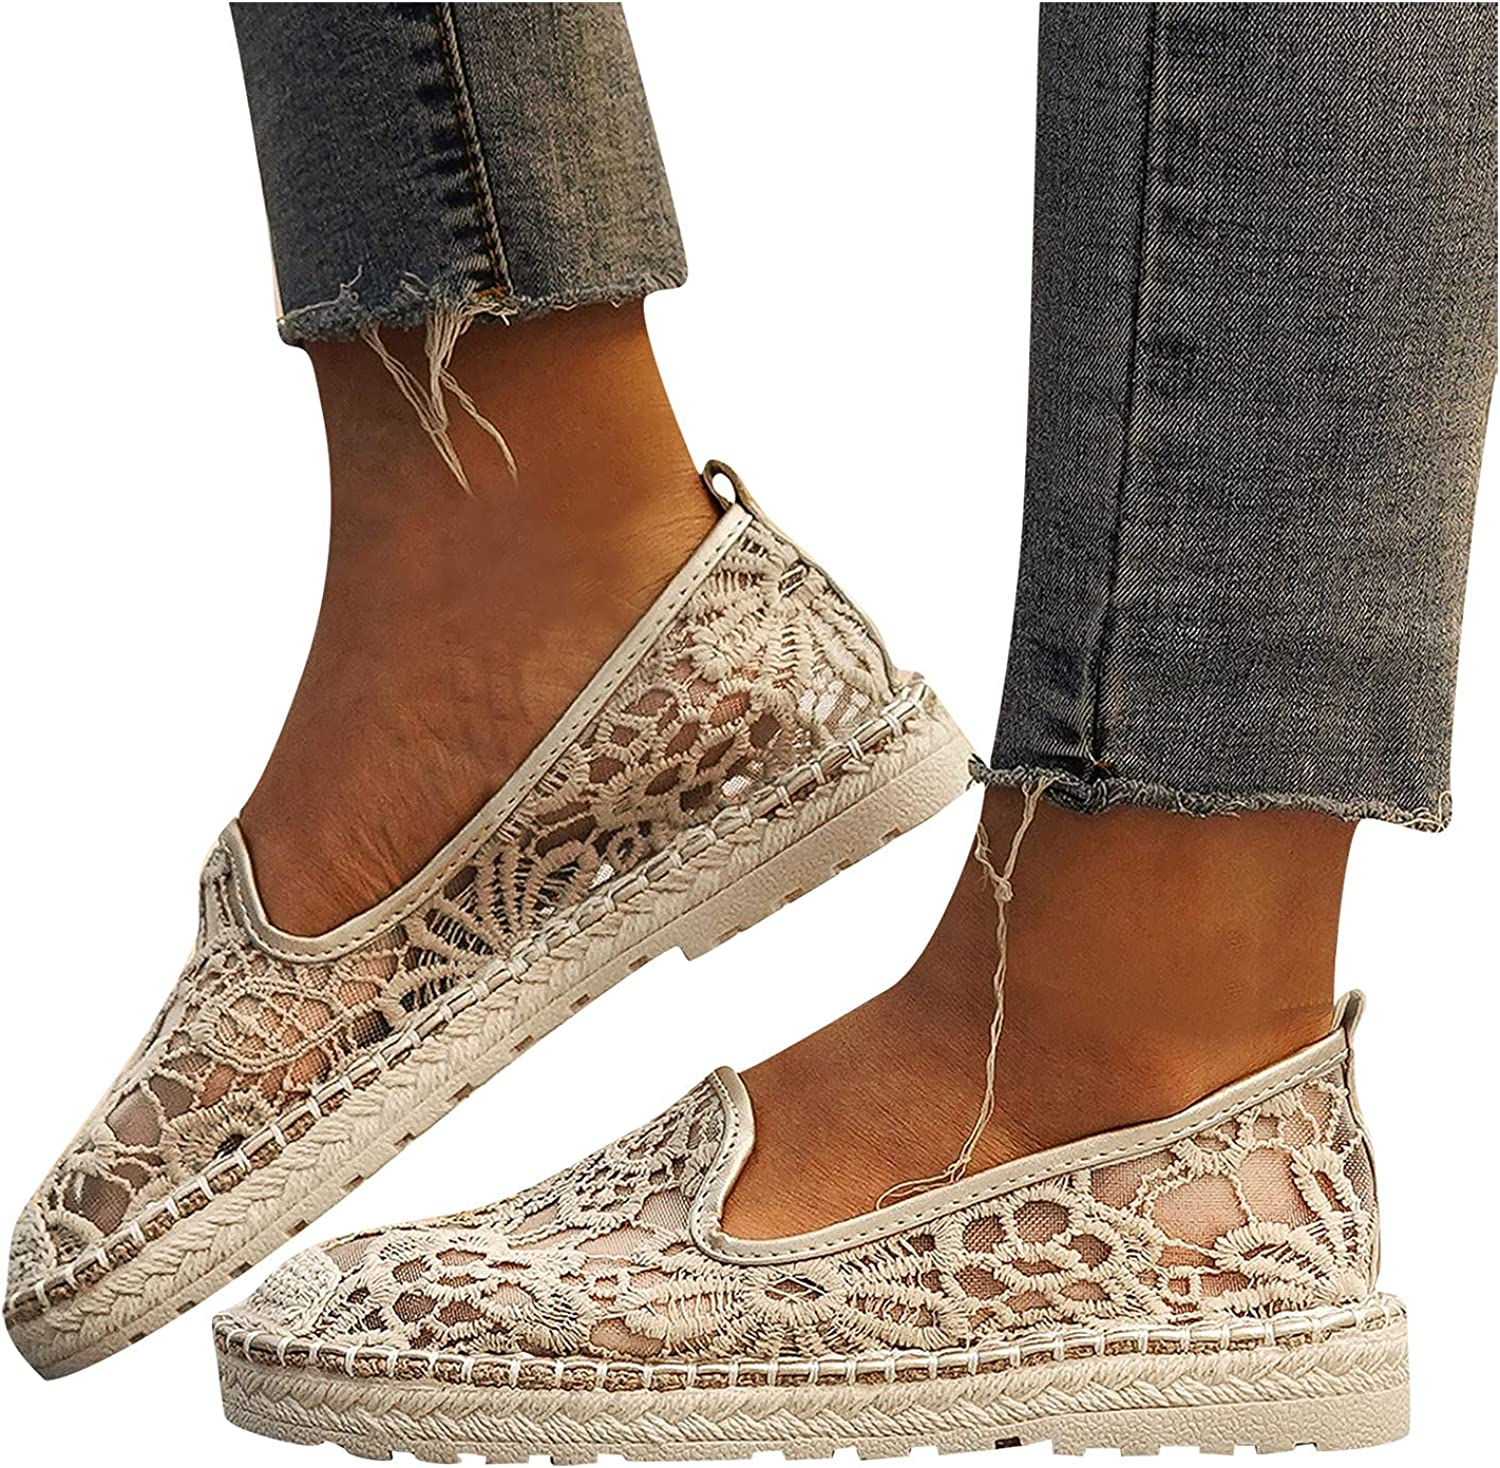 Gloneld Sneakers for Women Fashioh Mail order Summer Mesh Tra Lace ...